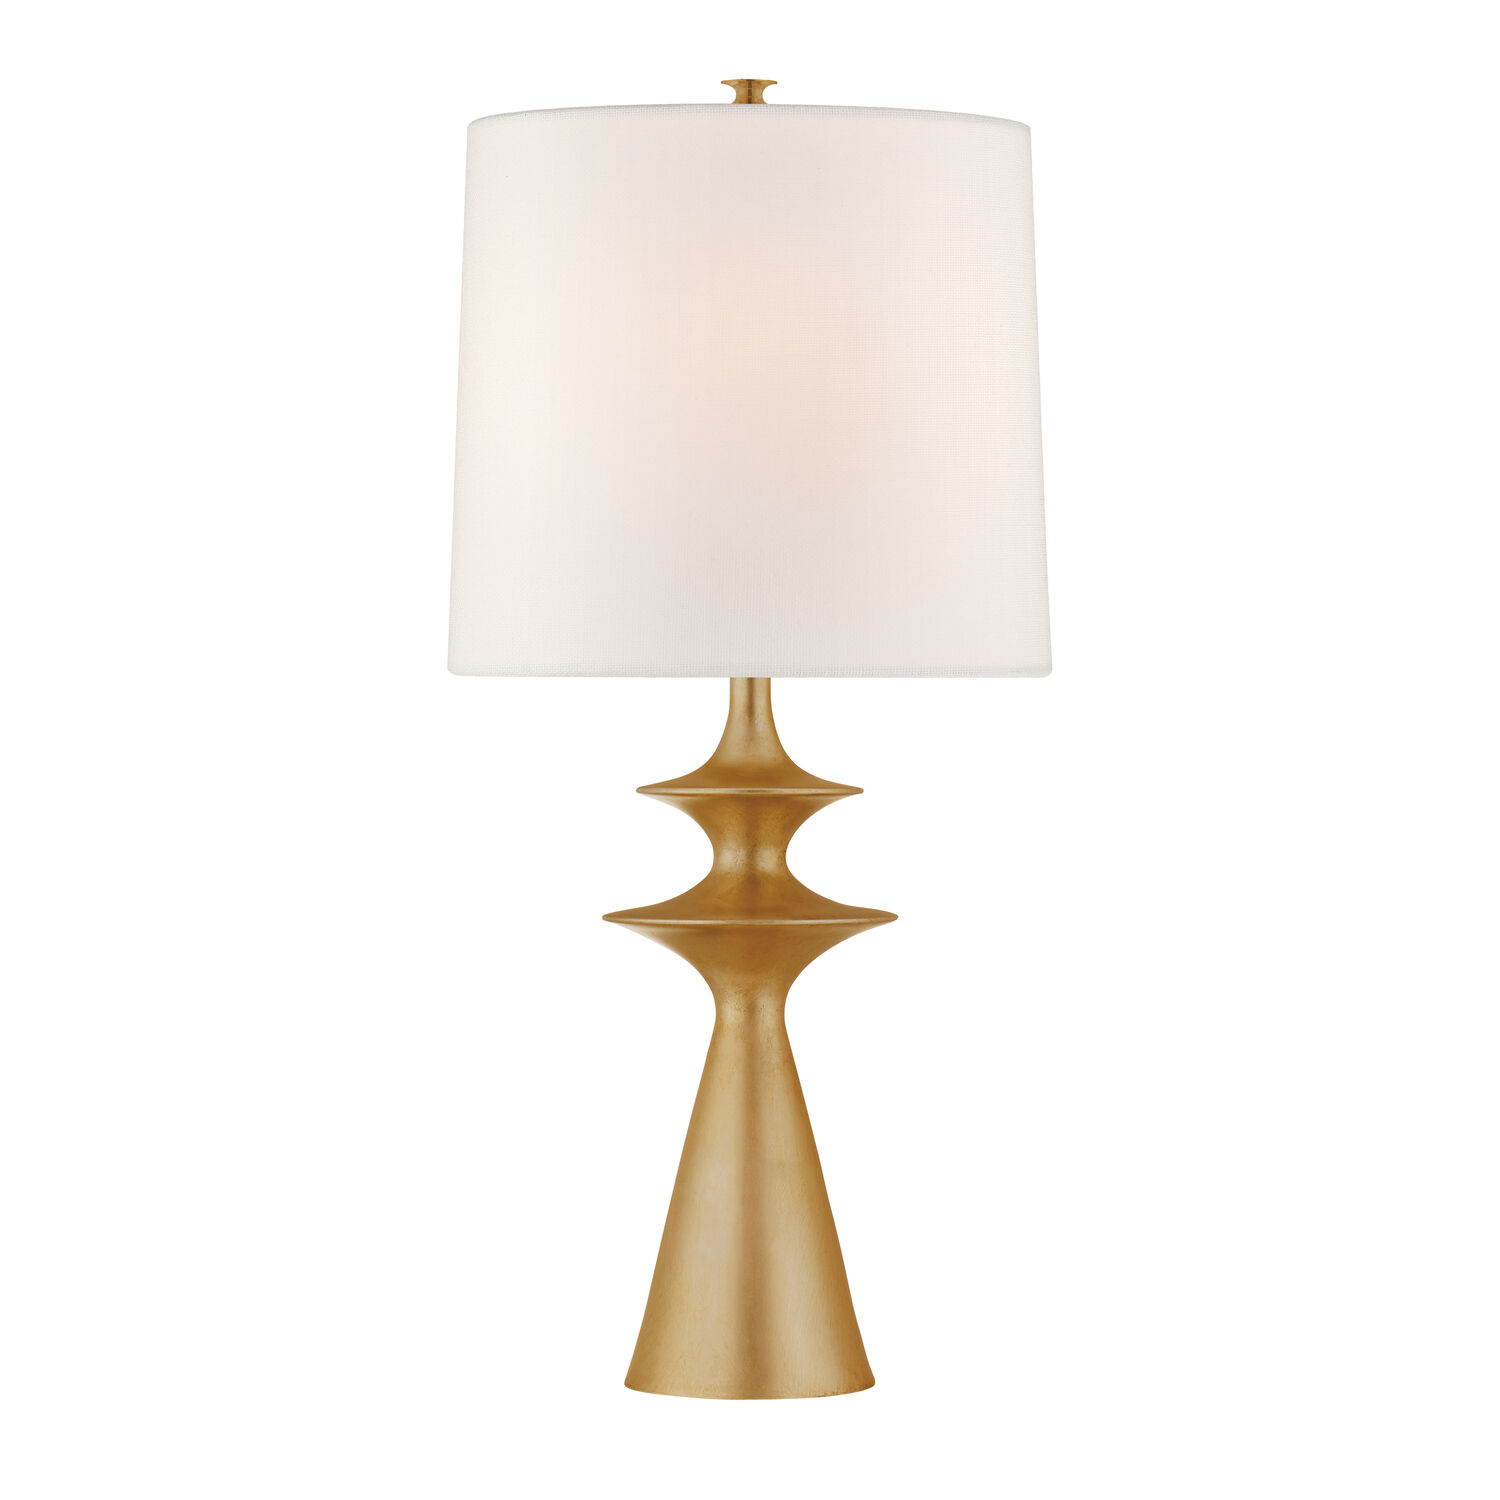 Lakmos Large Table Lamp